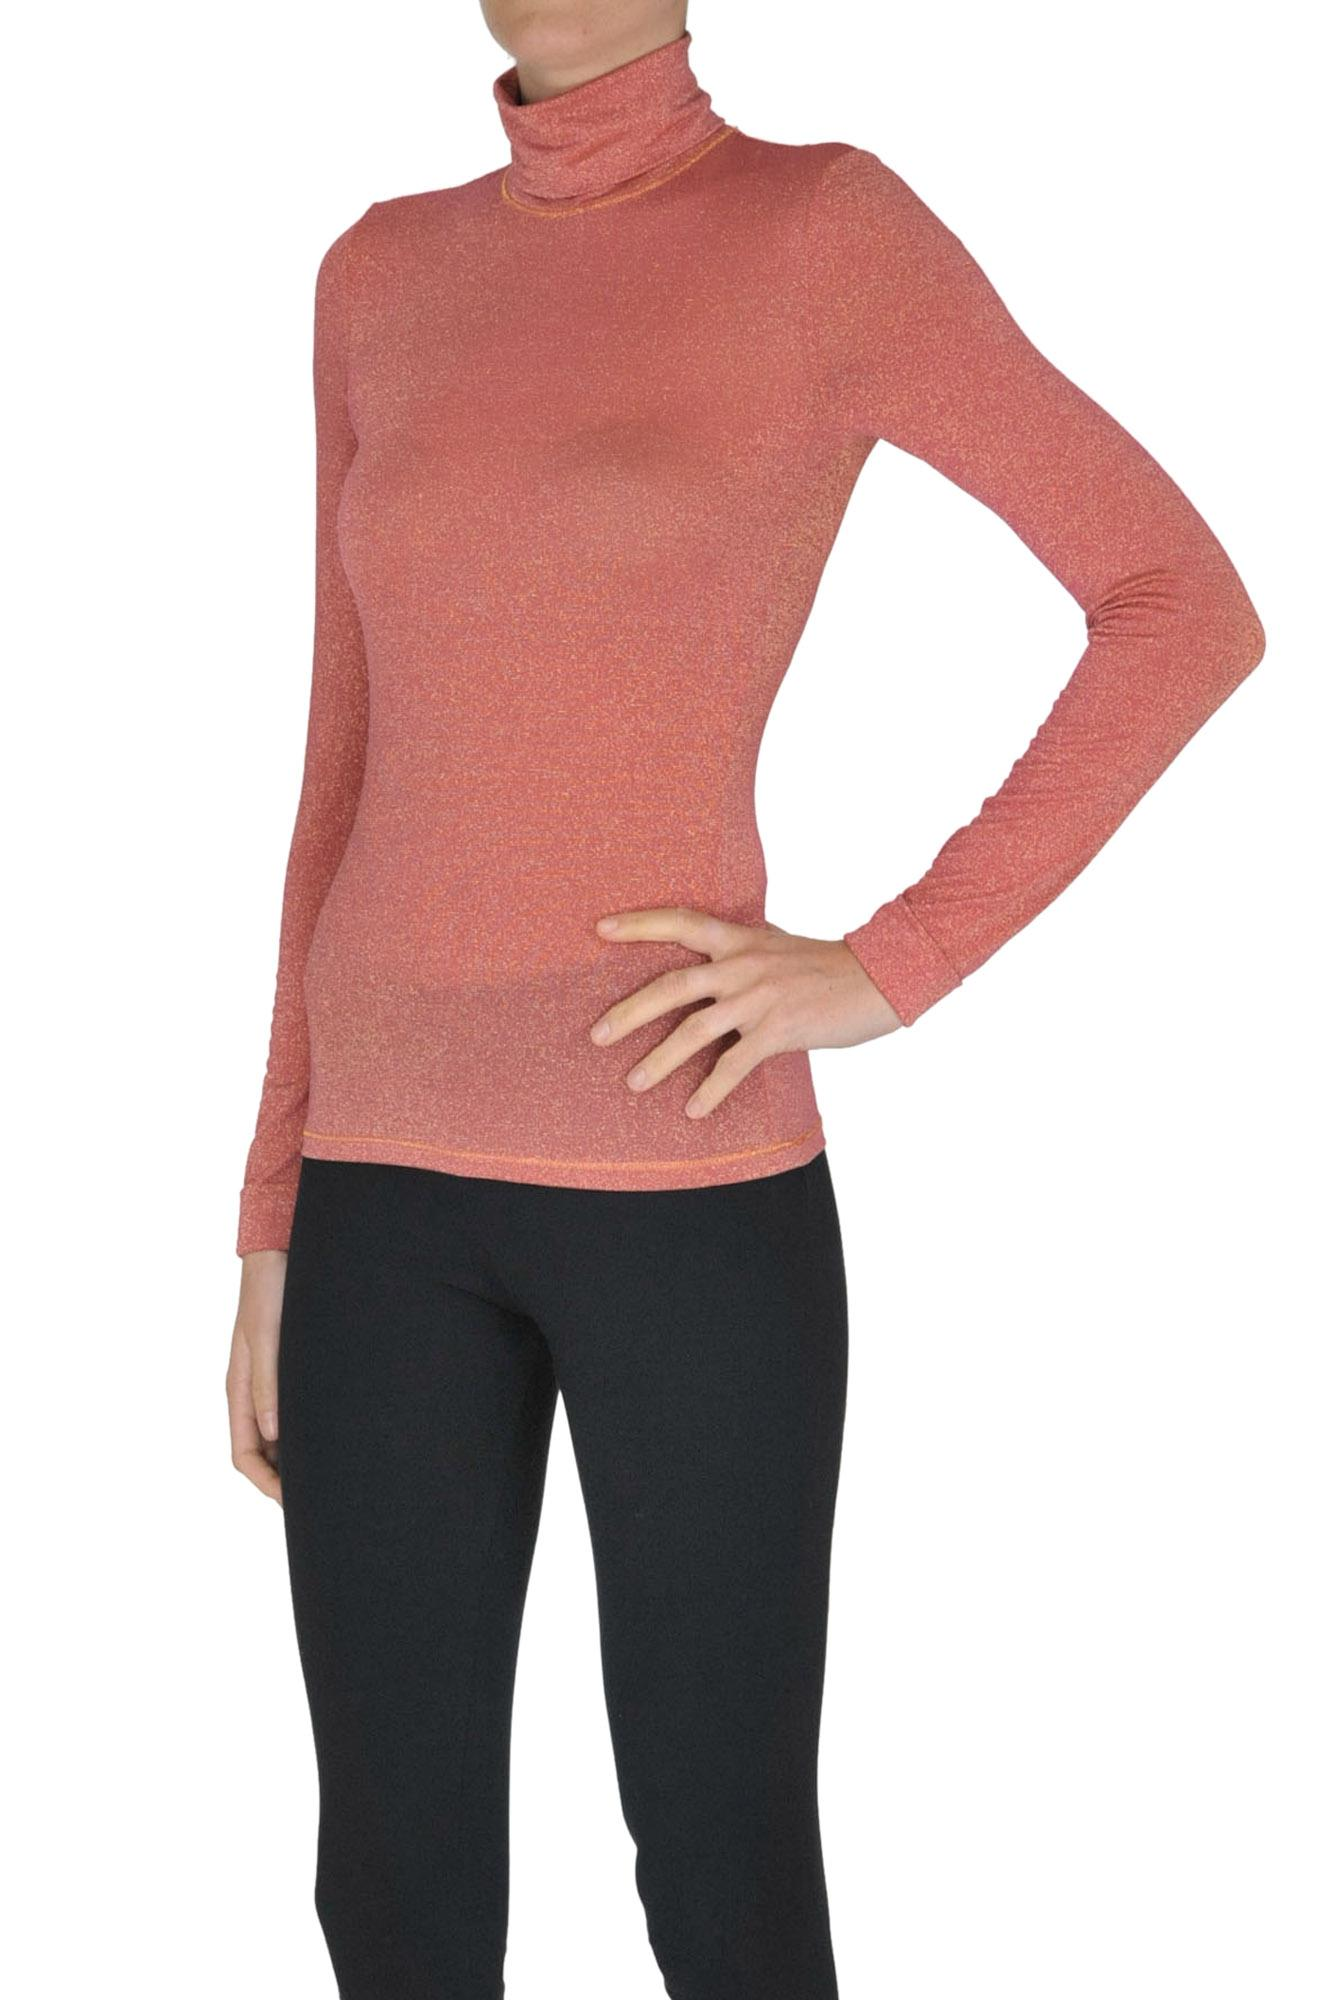 599d11140f Patrizia Pepe Lurex Turtleneck T-shirt in Pink - Lyst